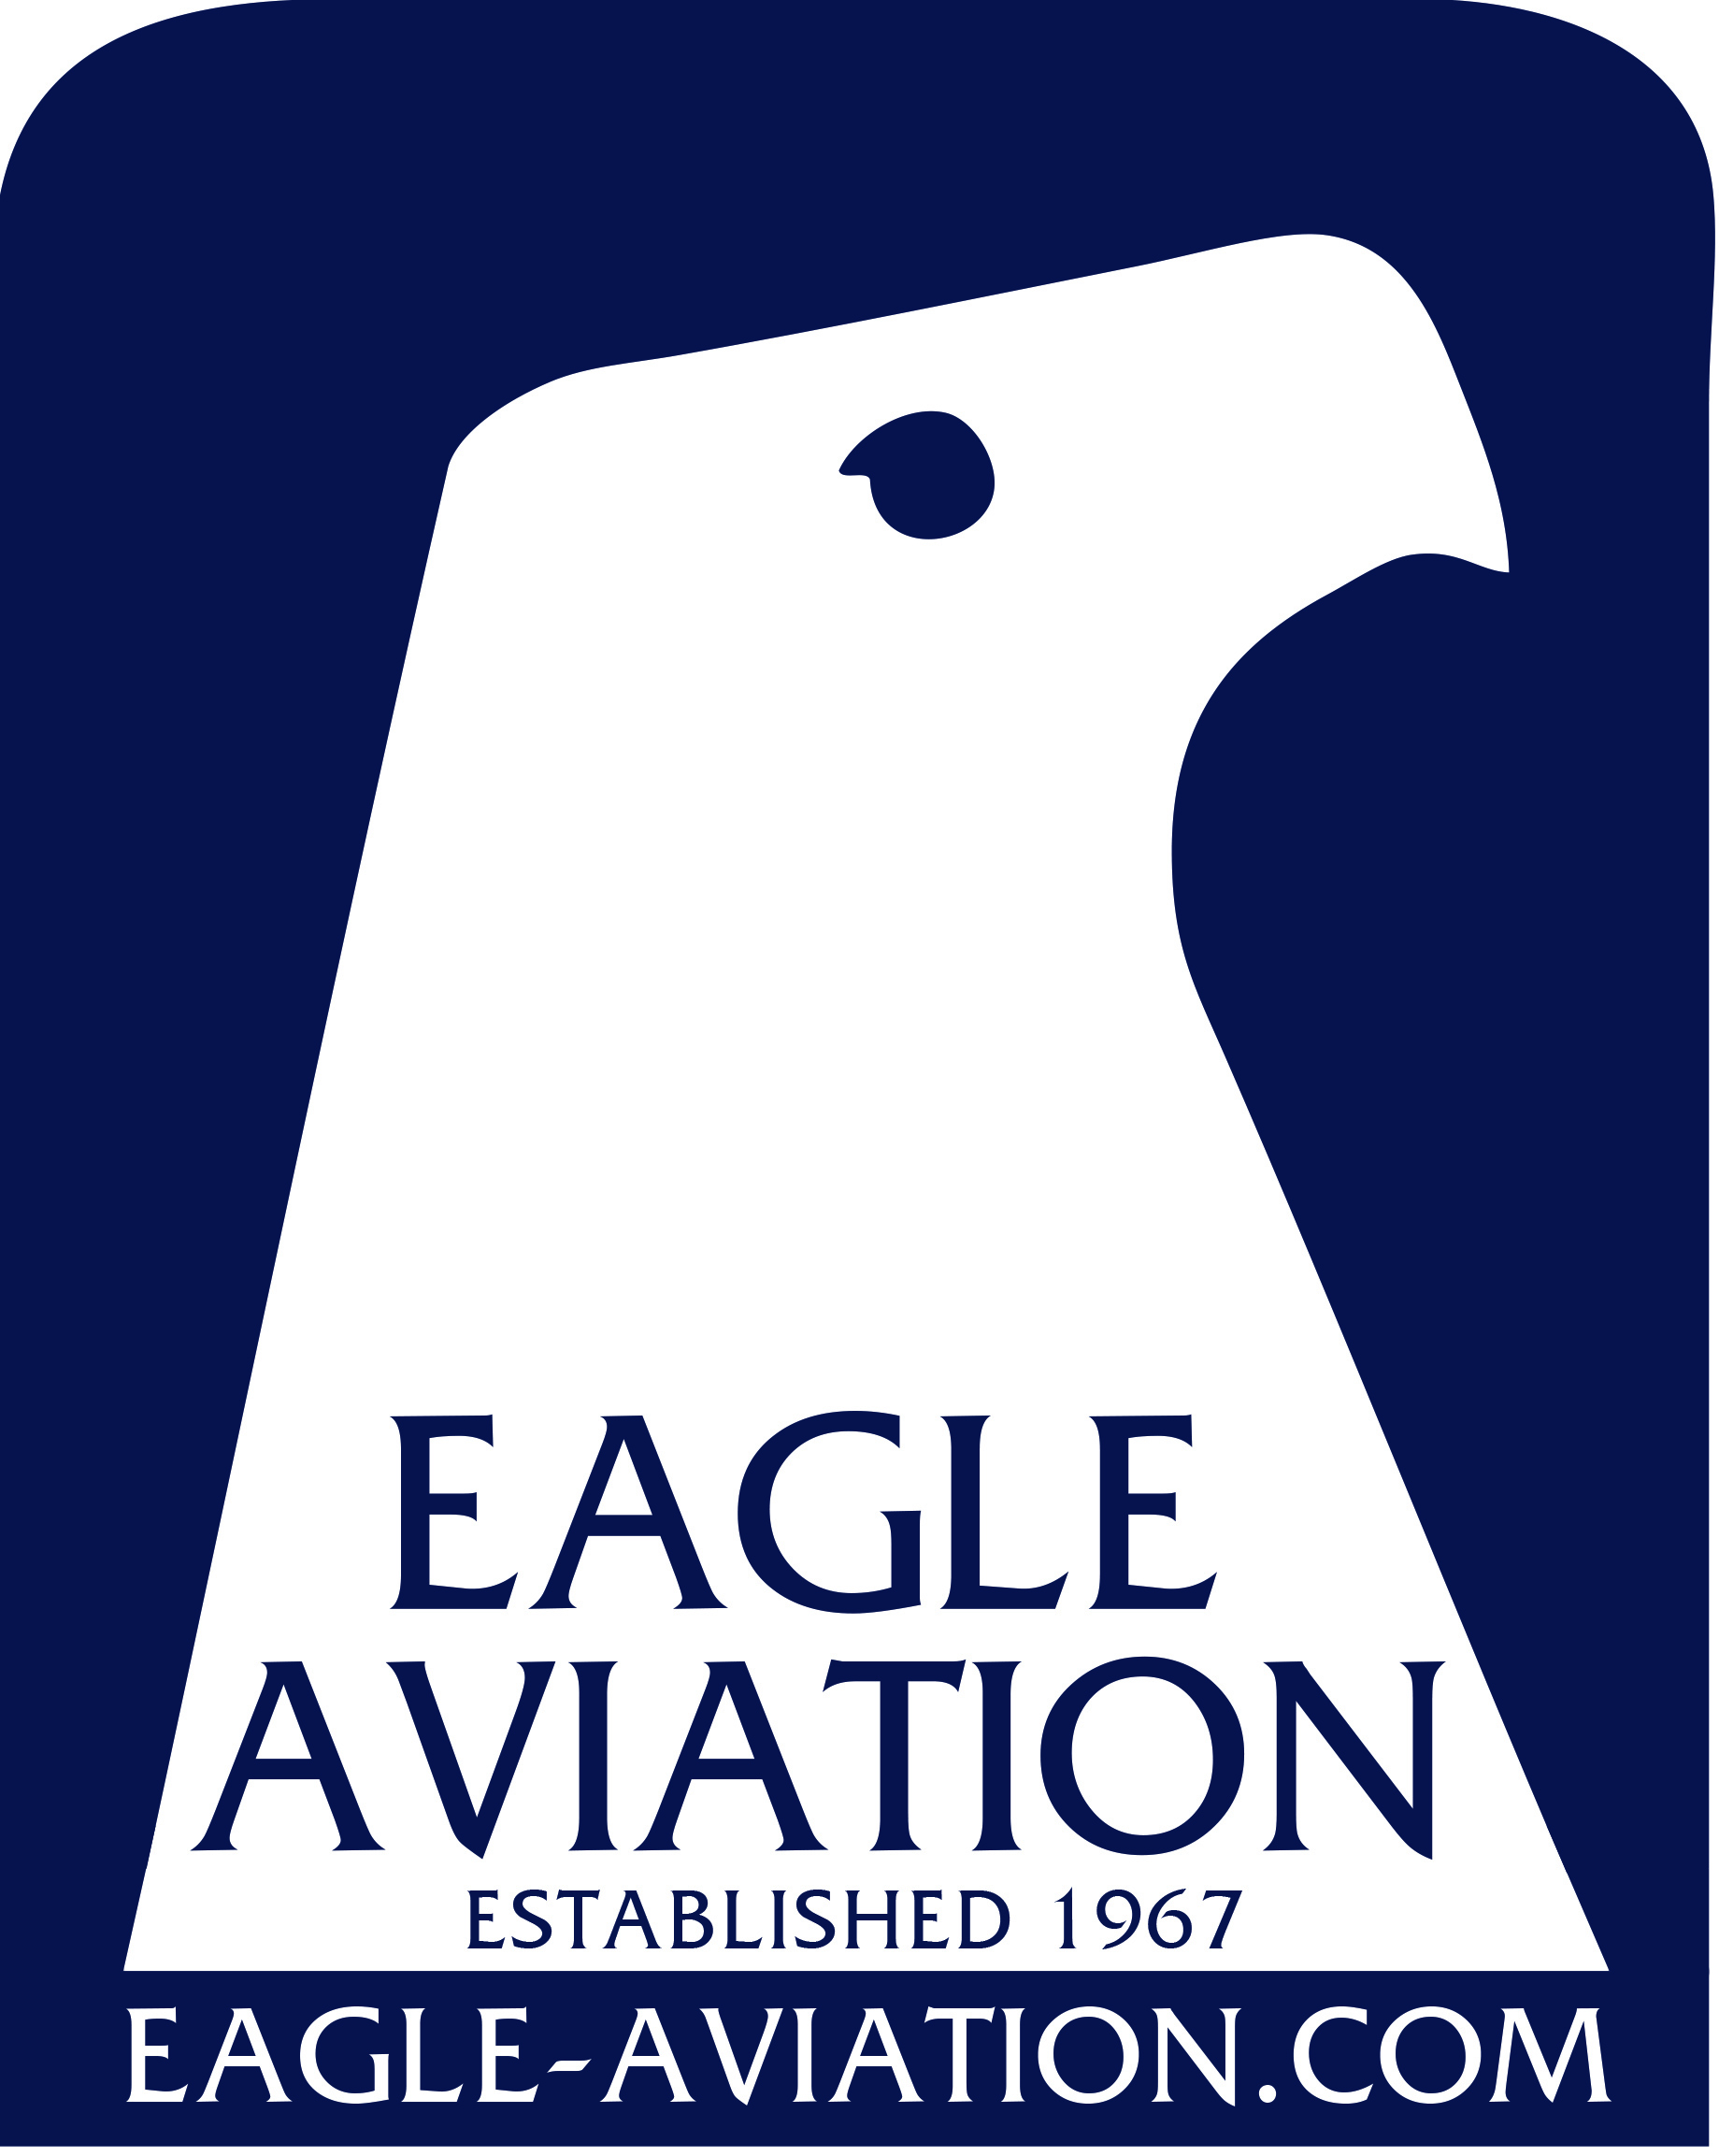 Eagle Aviation, Inc. logo